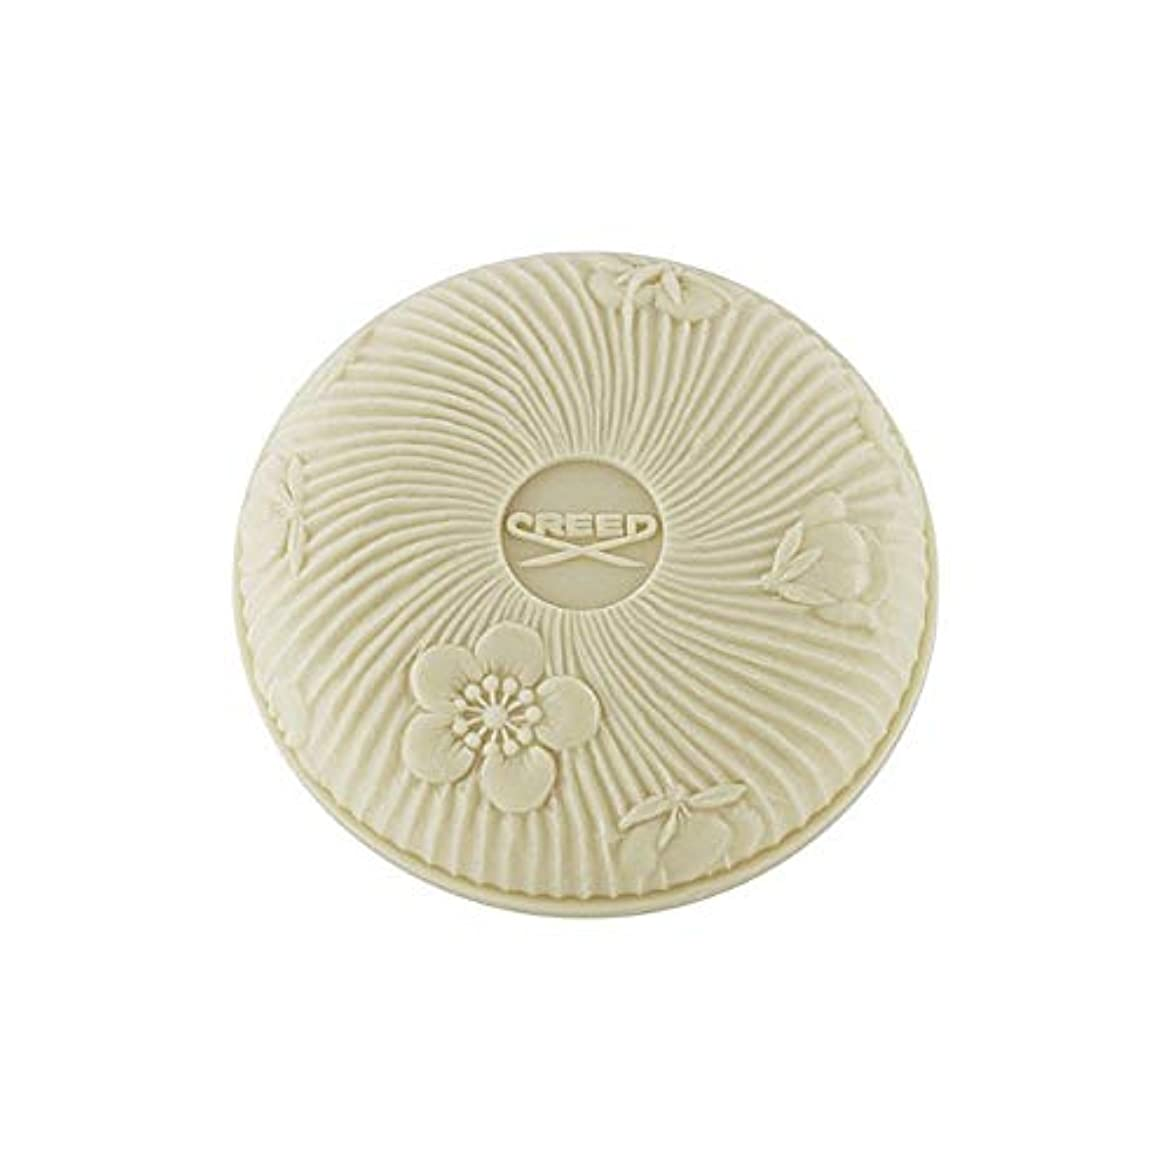 [Creed ] 白い石鹸150グラムで信条愛 - Creed Love In White Soap 150G [並行輸入品]